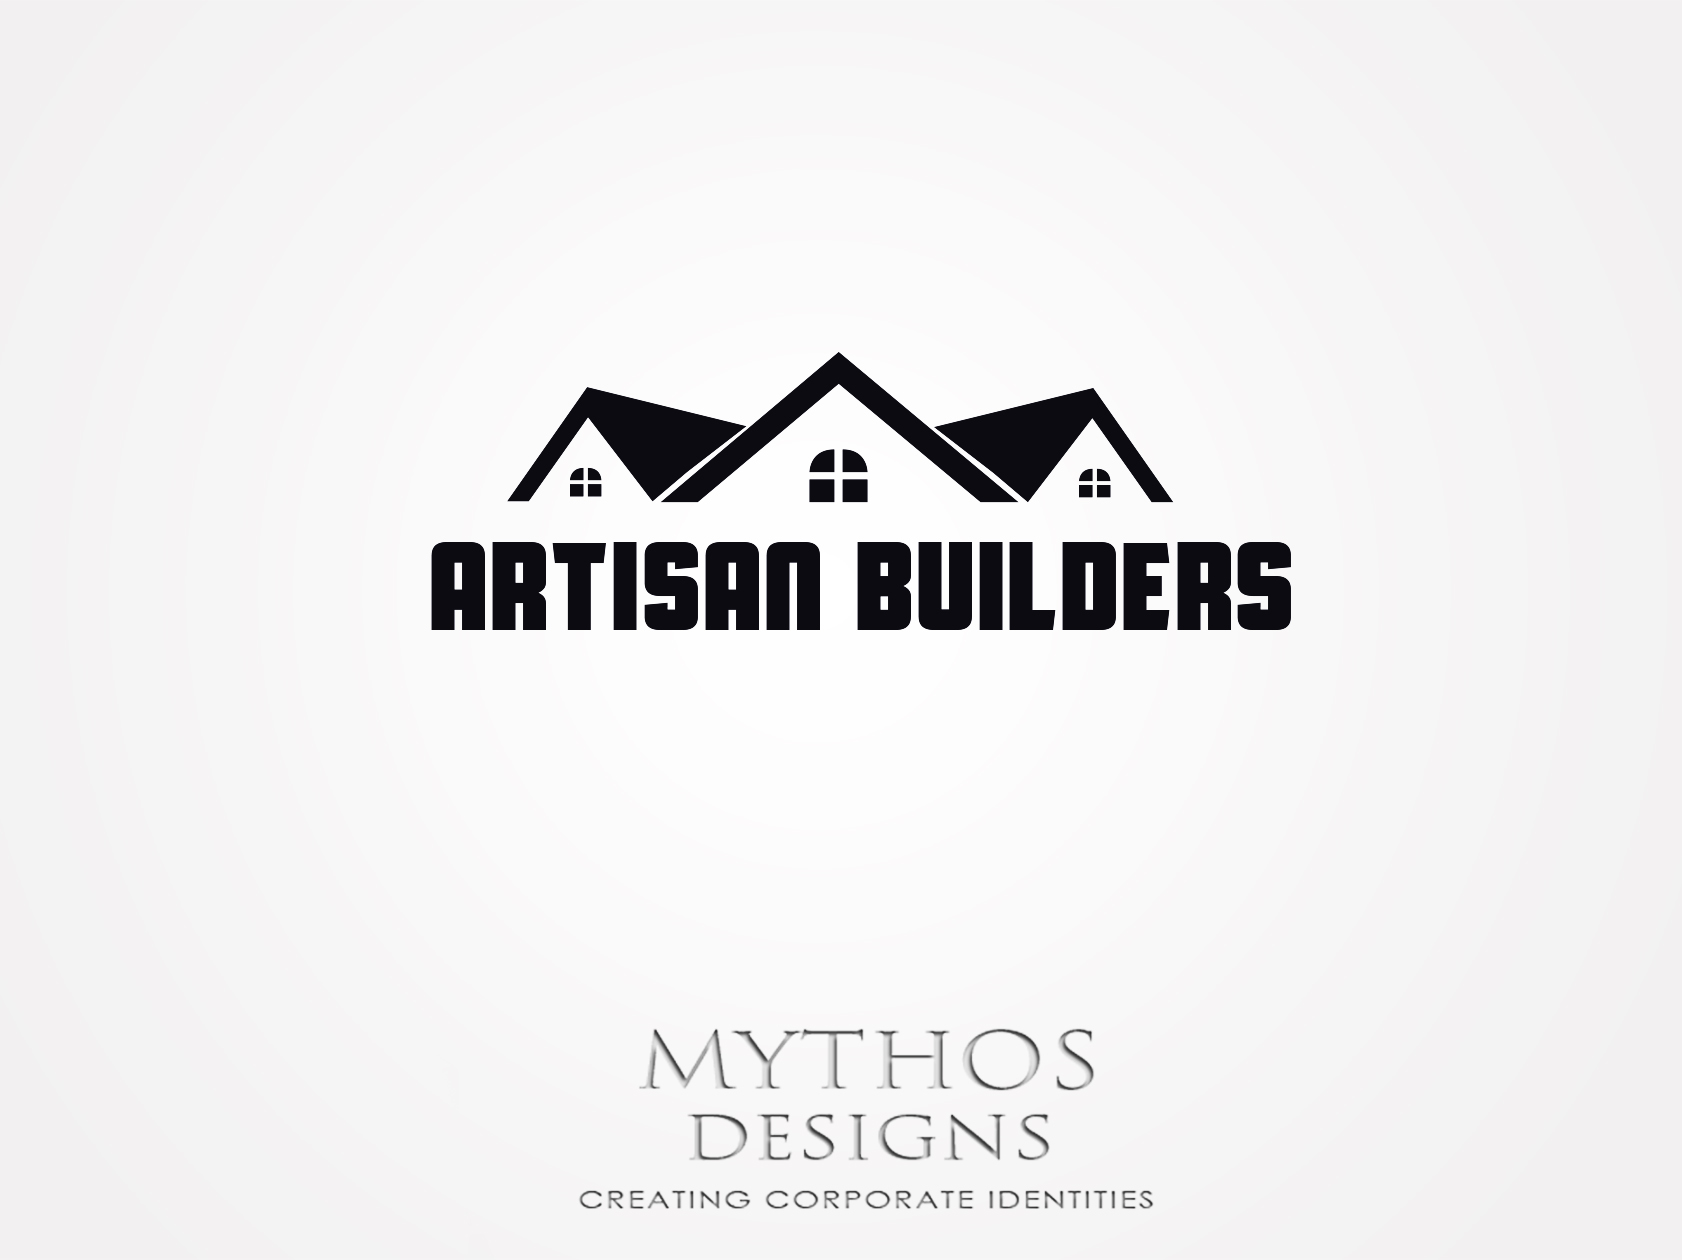 Logo Design by Mythos Designs - Entry No. 48 in the Logo Design Contest Captivating Logo Design for Artisan Builders.